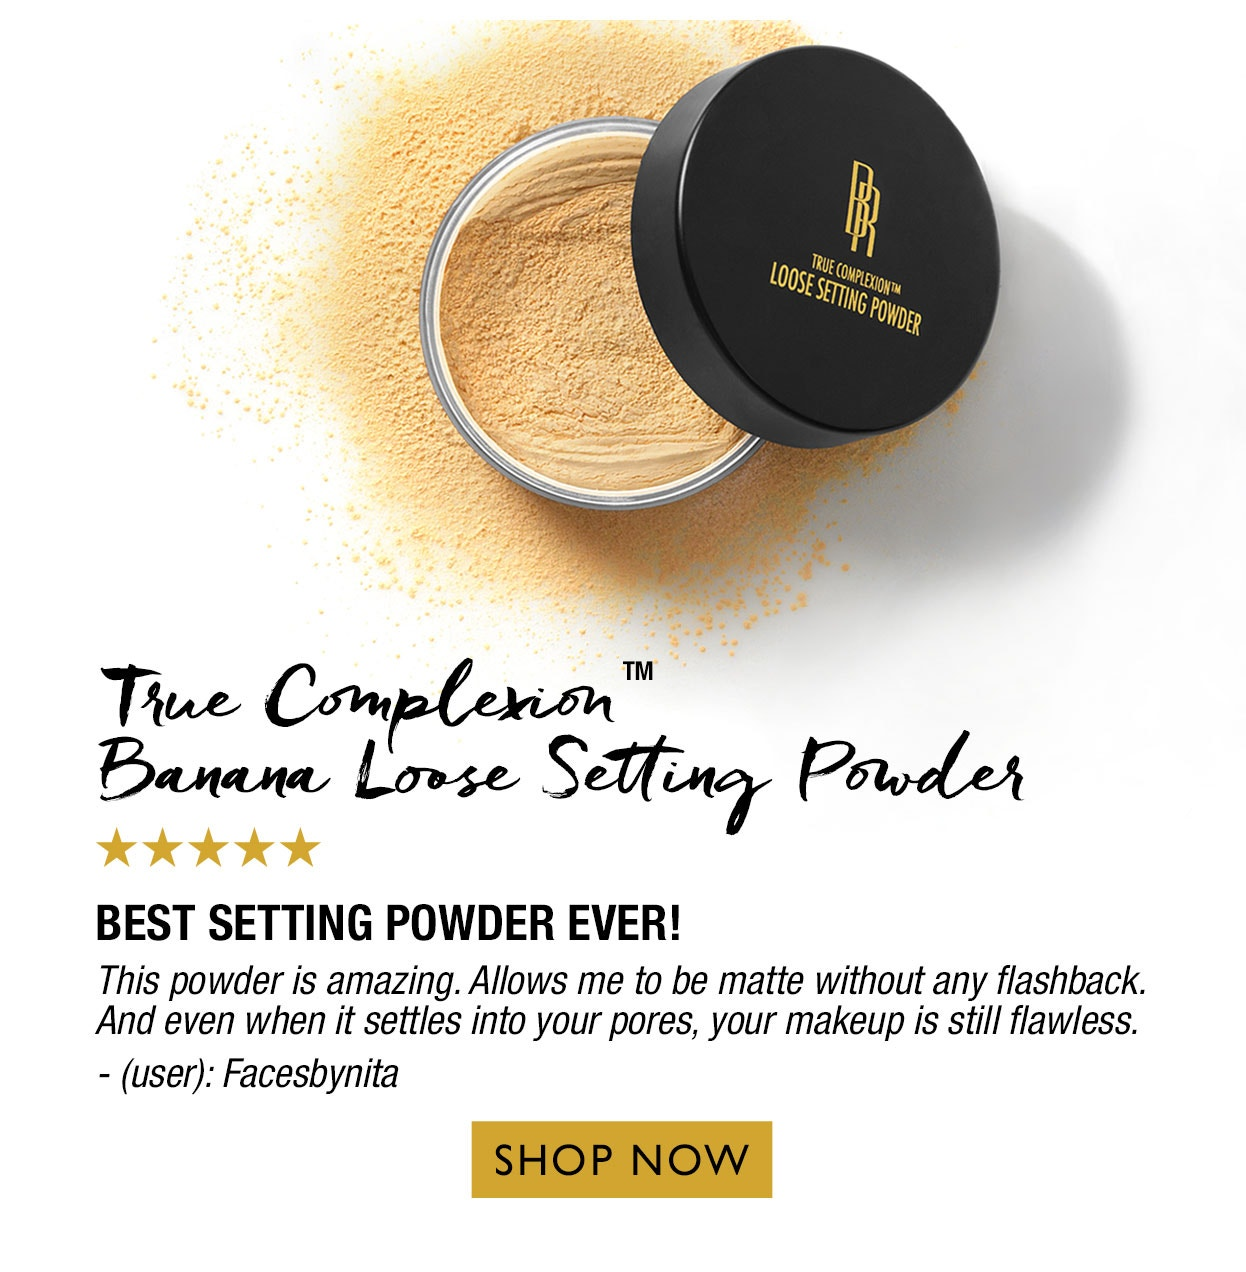 True Complexion Banana Loose Setting Powder | Best settin powder ever | This powder is amazing. Allows me to be matte without any flashback. And even when it settles into your pores, your makeup is still flawless | Click Here to Shop Now.